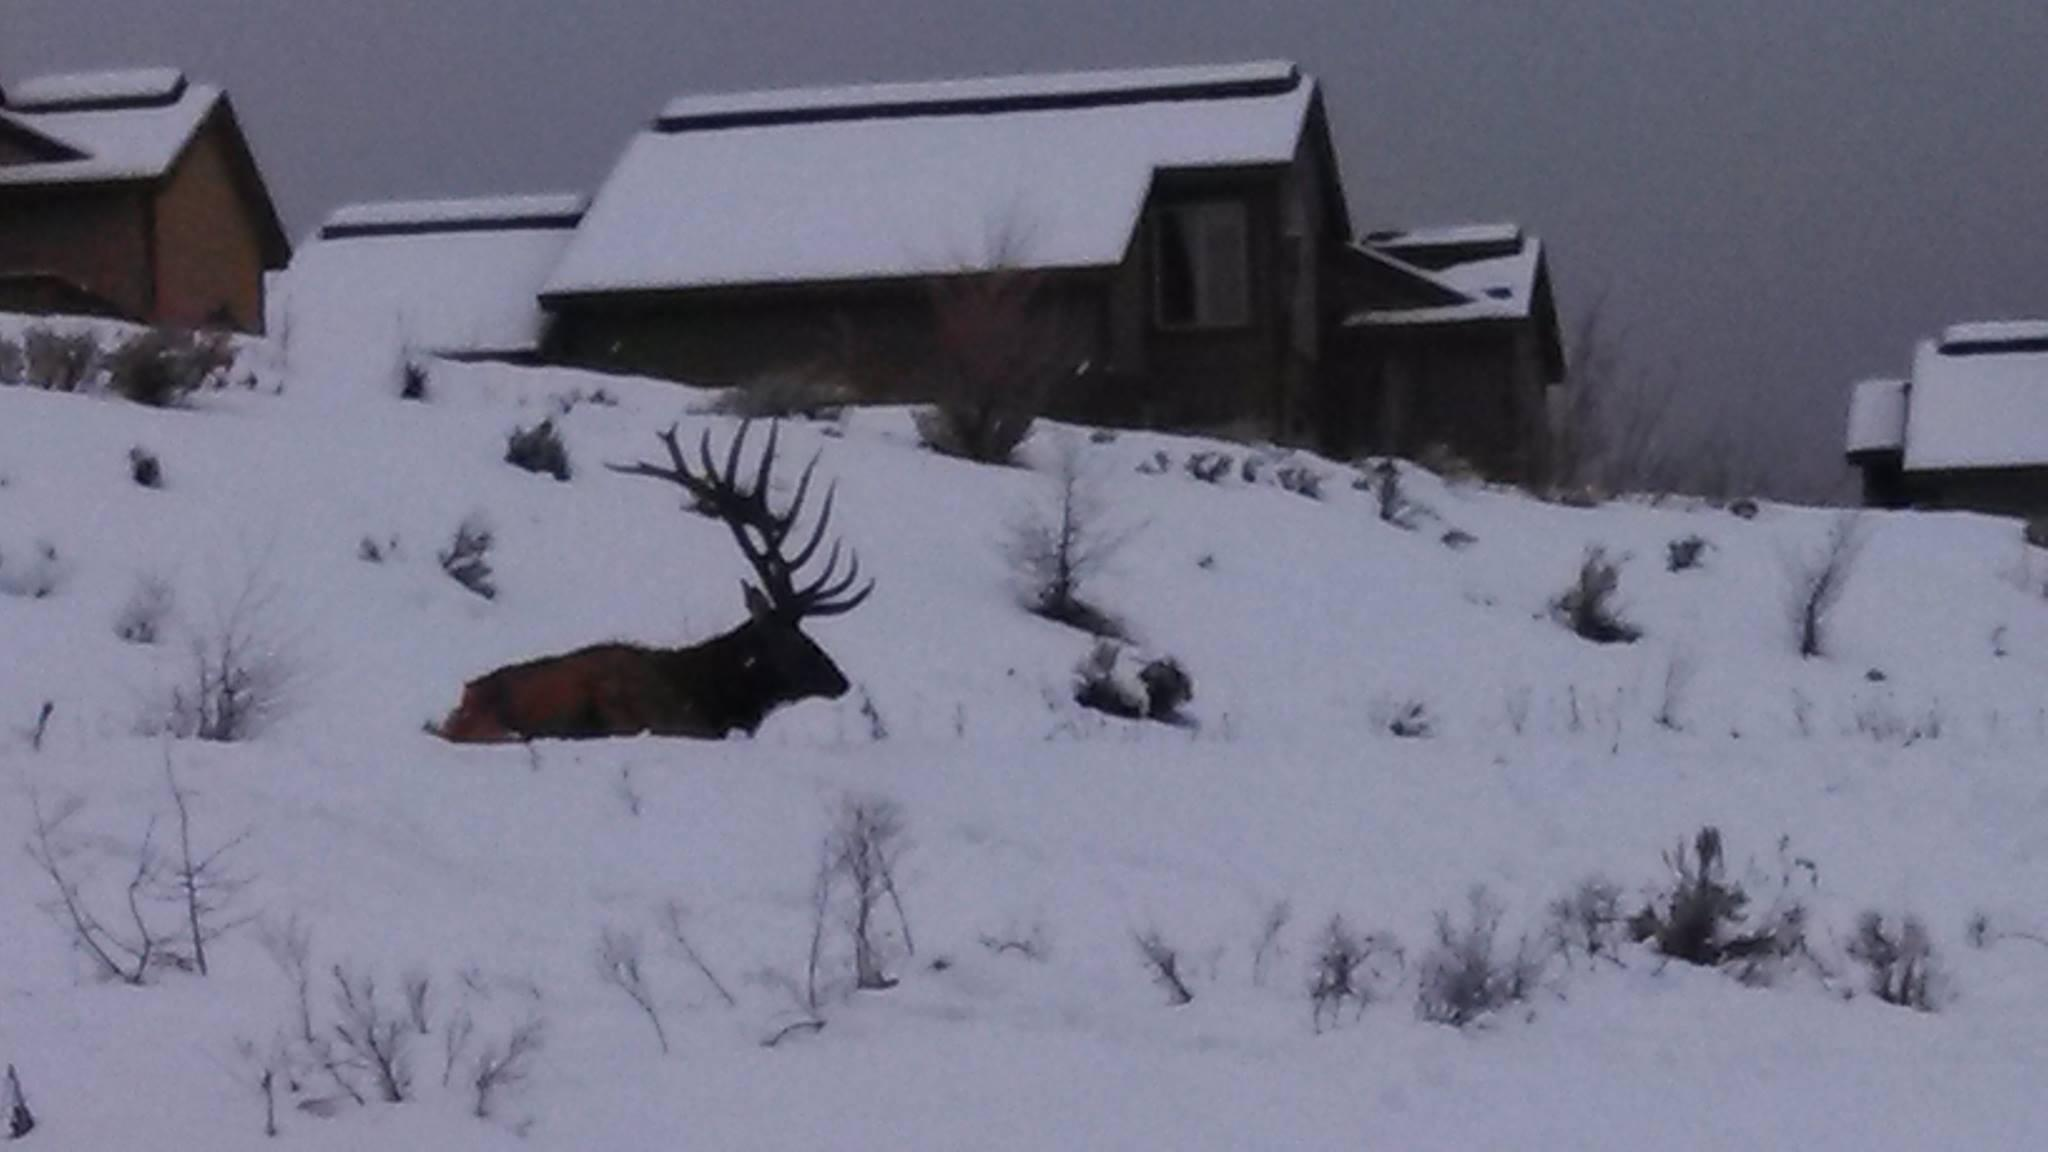 RT @RMEF: Good morning from Clark, Colorado! (PHOTO via @RMEF & Jamie) #elk #conservation #hunting http://t.co/48fiN6cohu